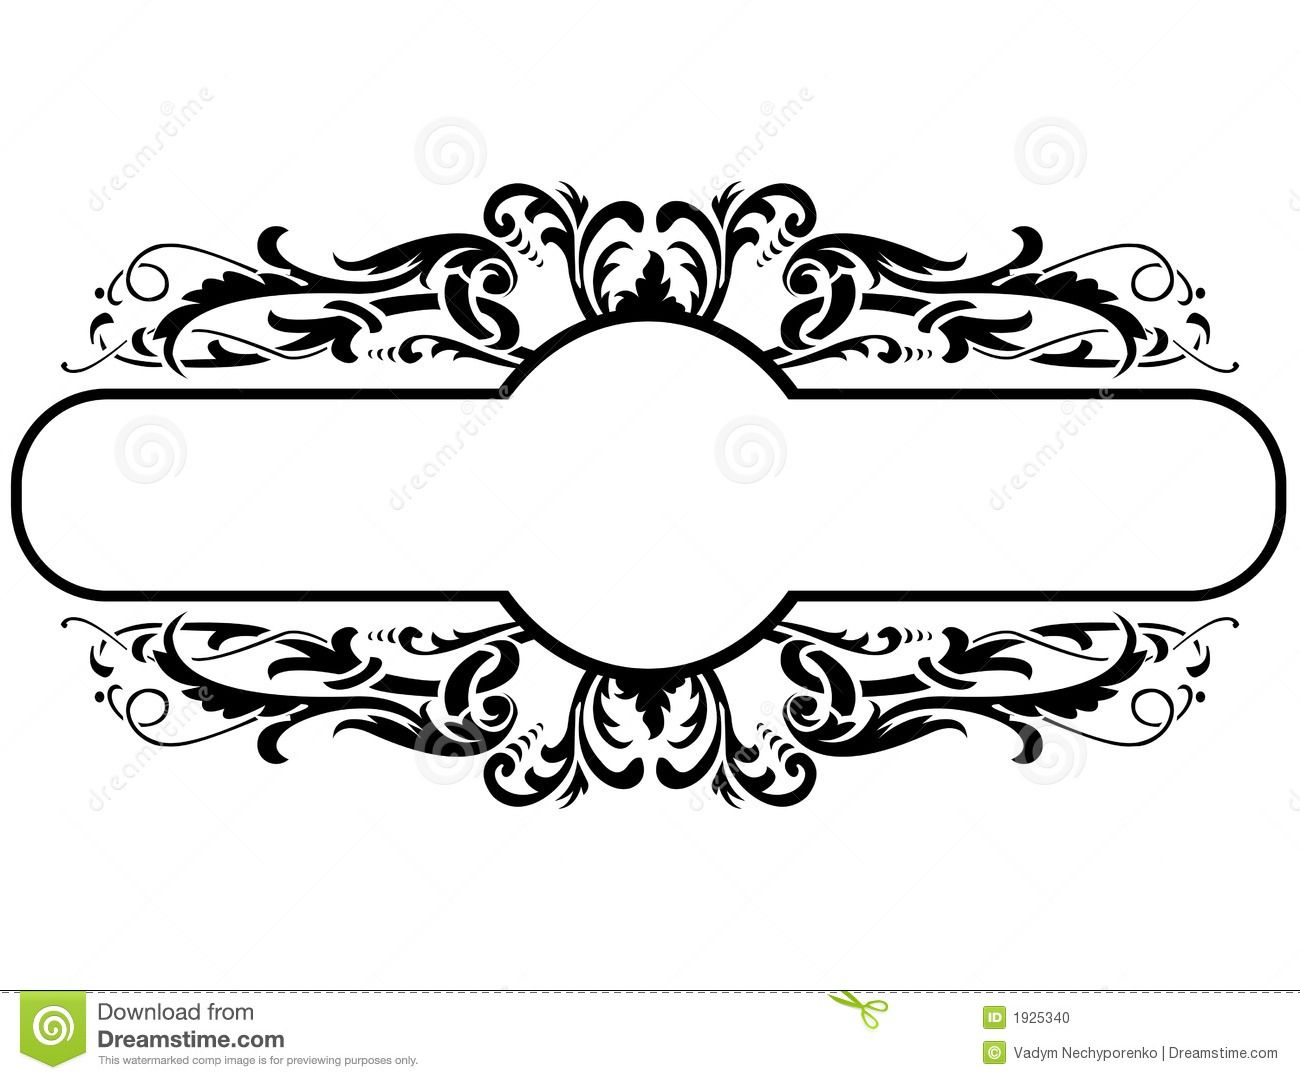 blackframefloraldecorationvectorillustration1925340